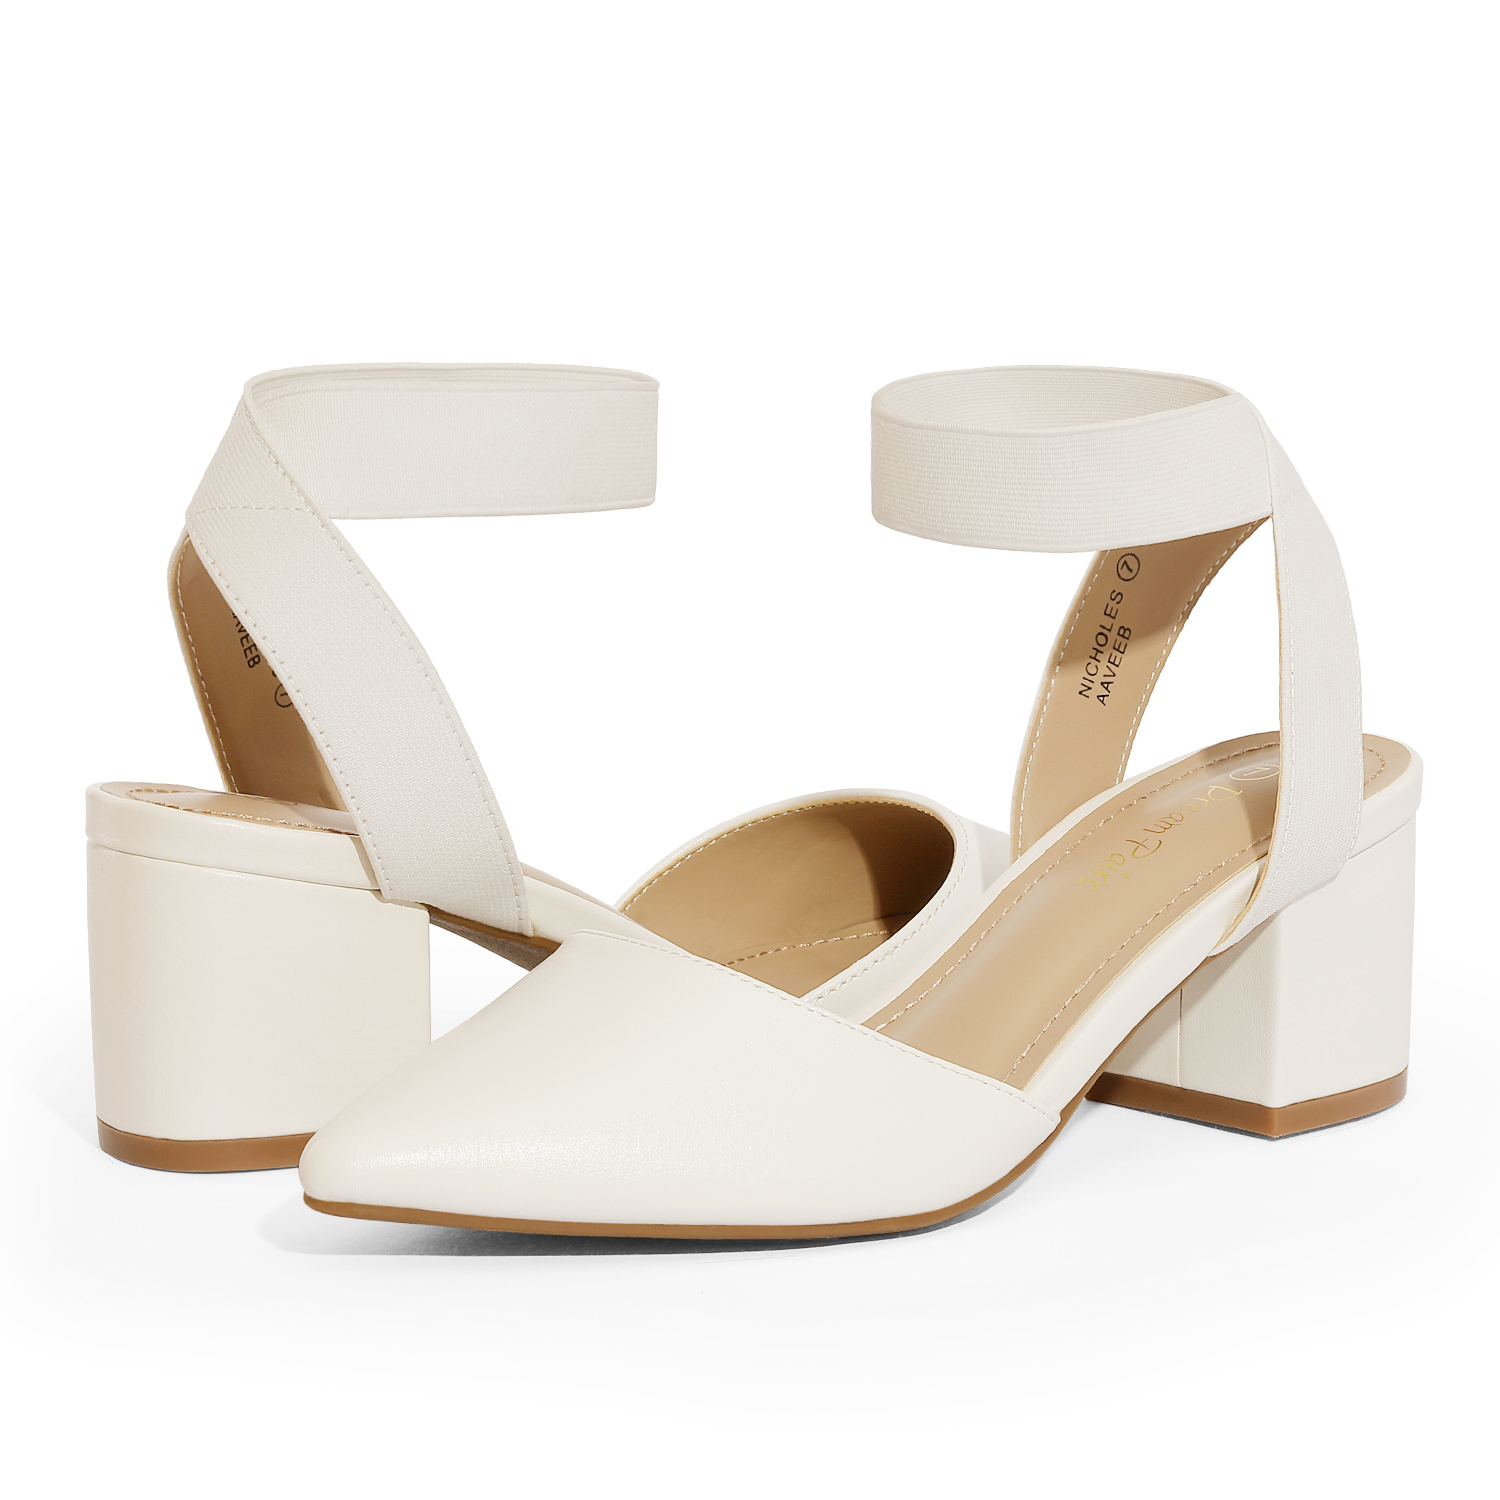 thumbnail 75 - Women-039-s-Elastic-Ankle-Strap-Pointed-Toe-Pump-Shoes-Low-Chunky-Heel-Dress-Pumps